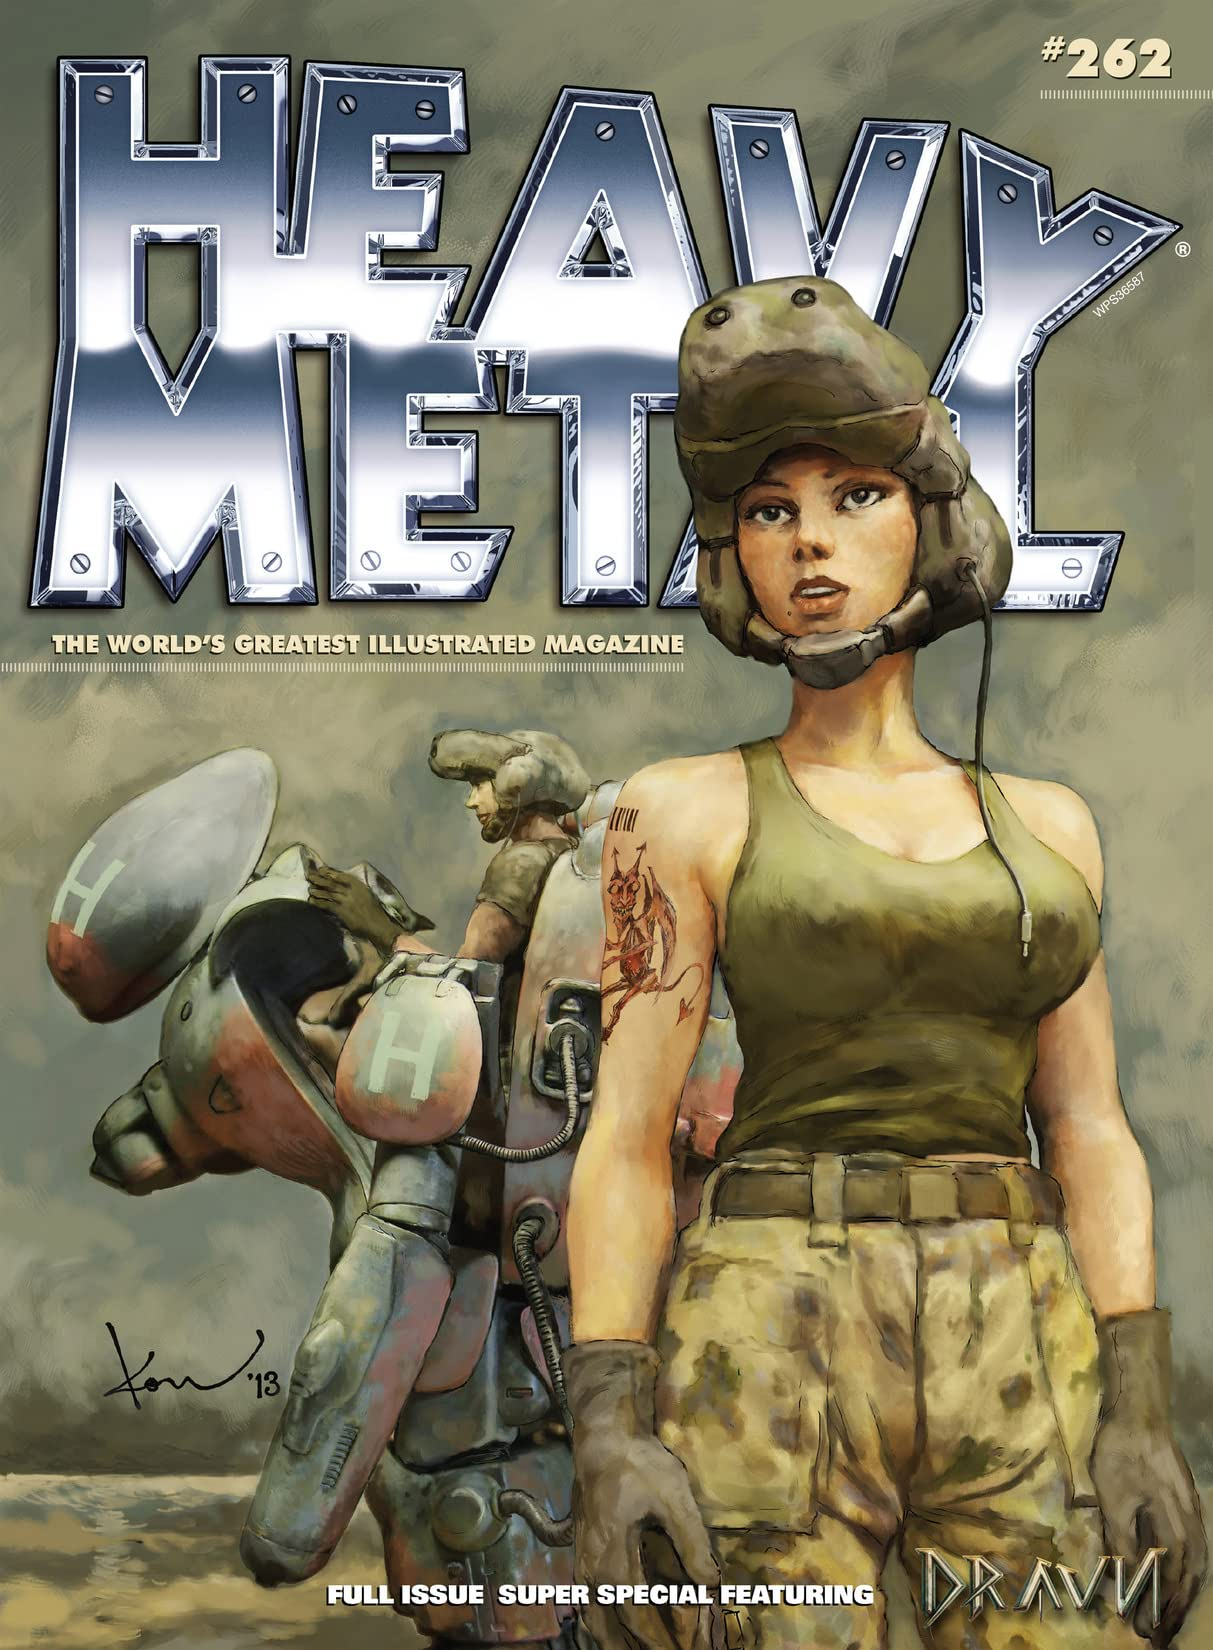 Heavy Metal #262